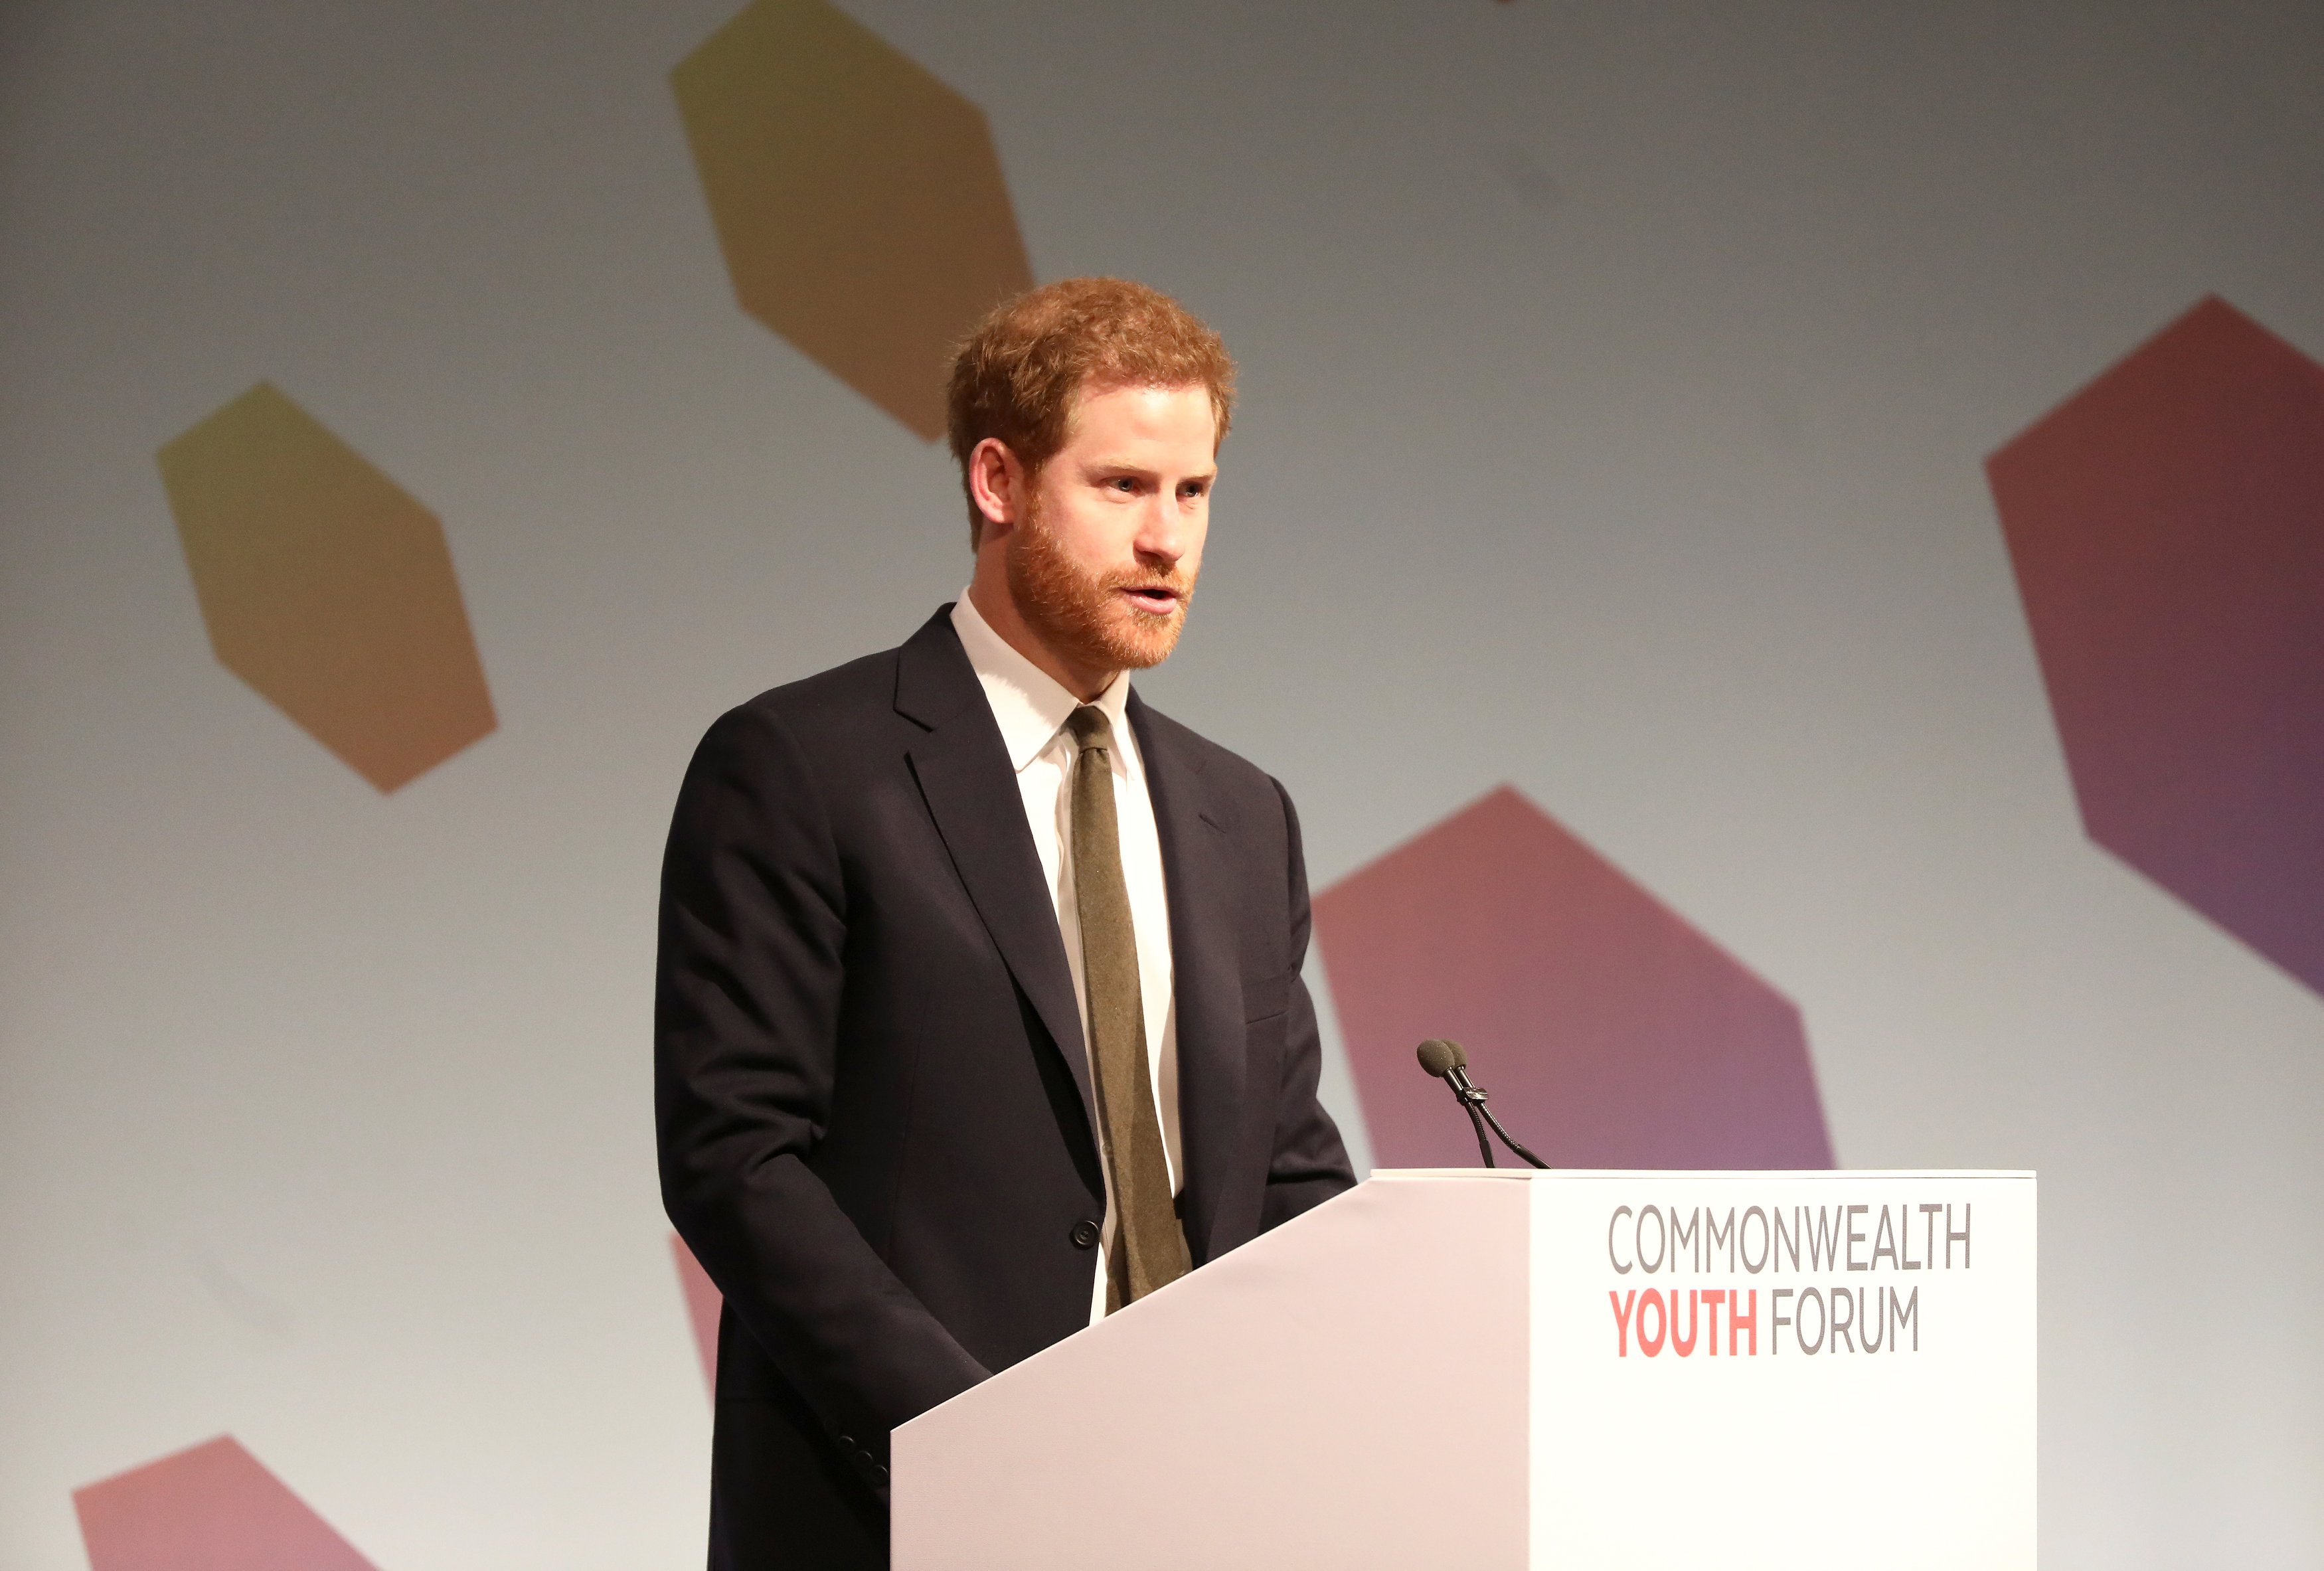 Prince-Harry-Gives-Shout-Out-To-Meghan-Markle-At-Forum-Speech-Im-Grateful-To-The-Woman-Im-About-To-Marry